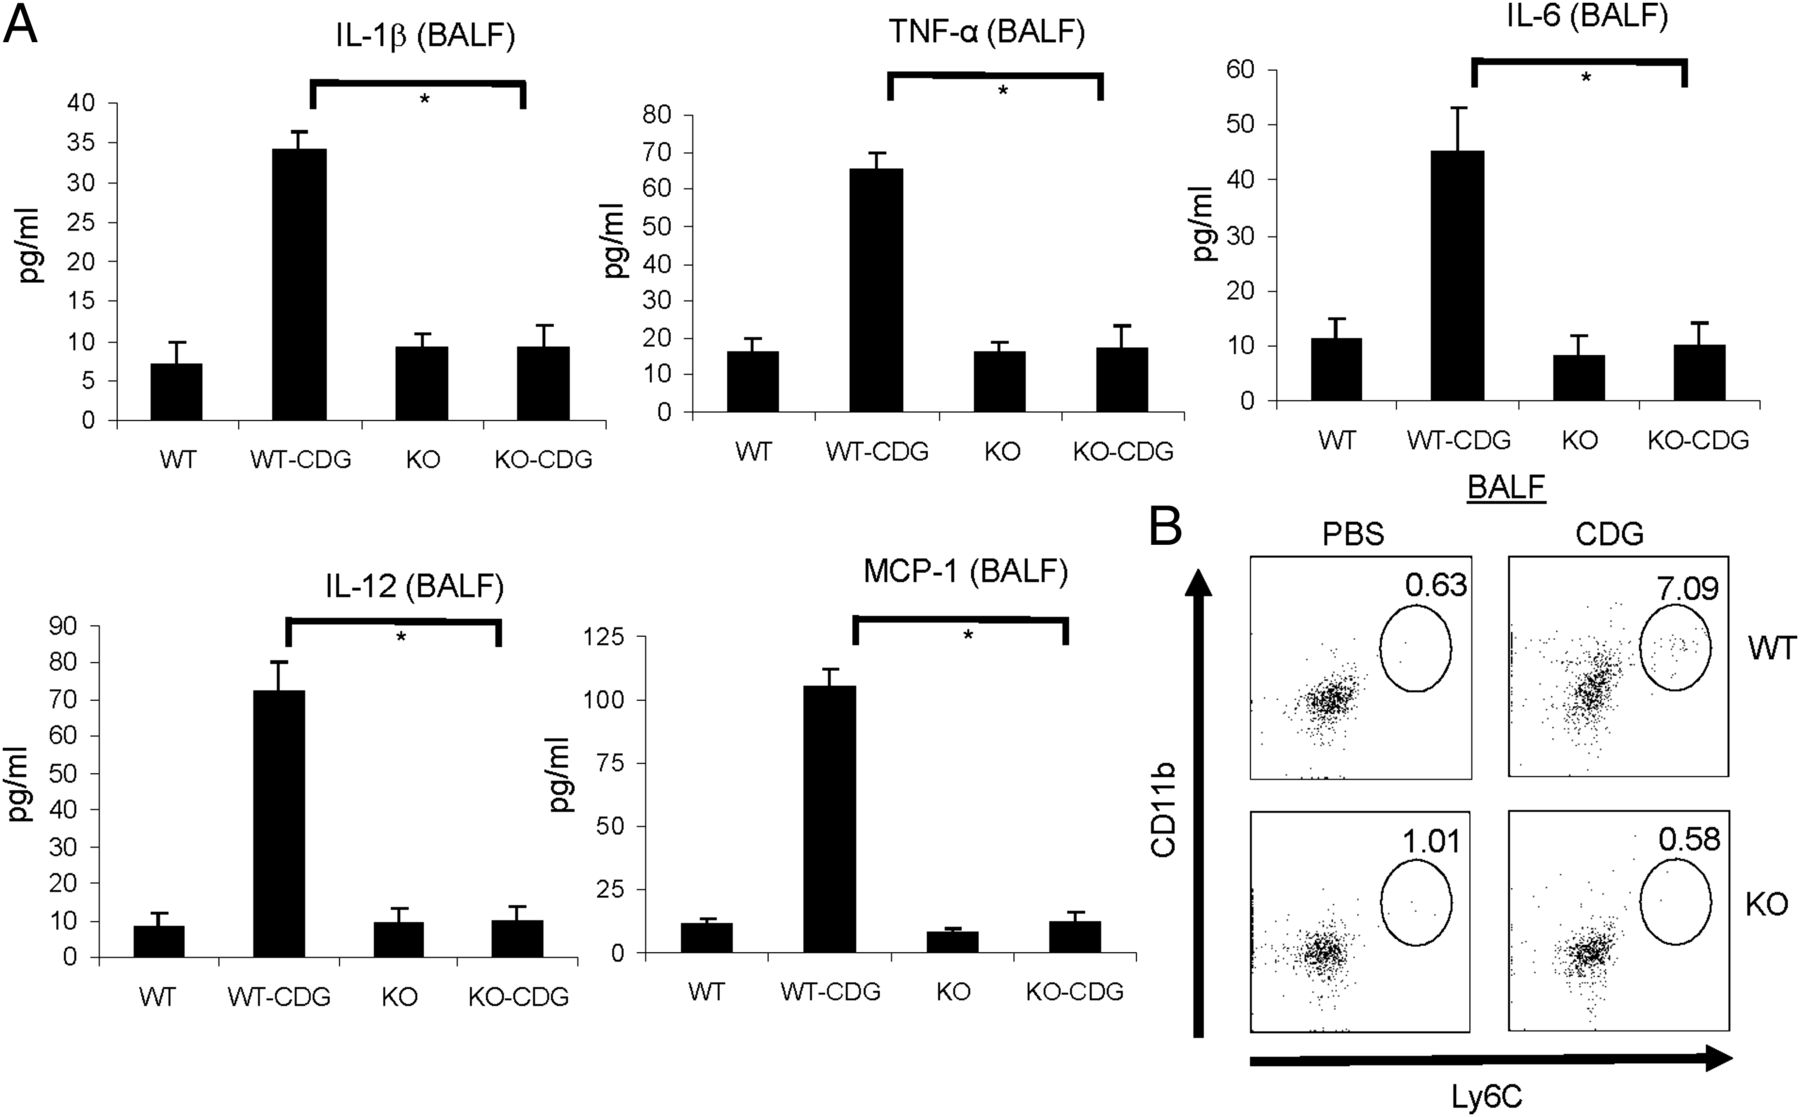 MPYS/STING-Mediated TNF-α, Not Type I IFN, Is Essential